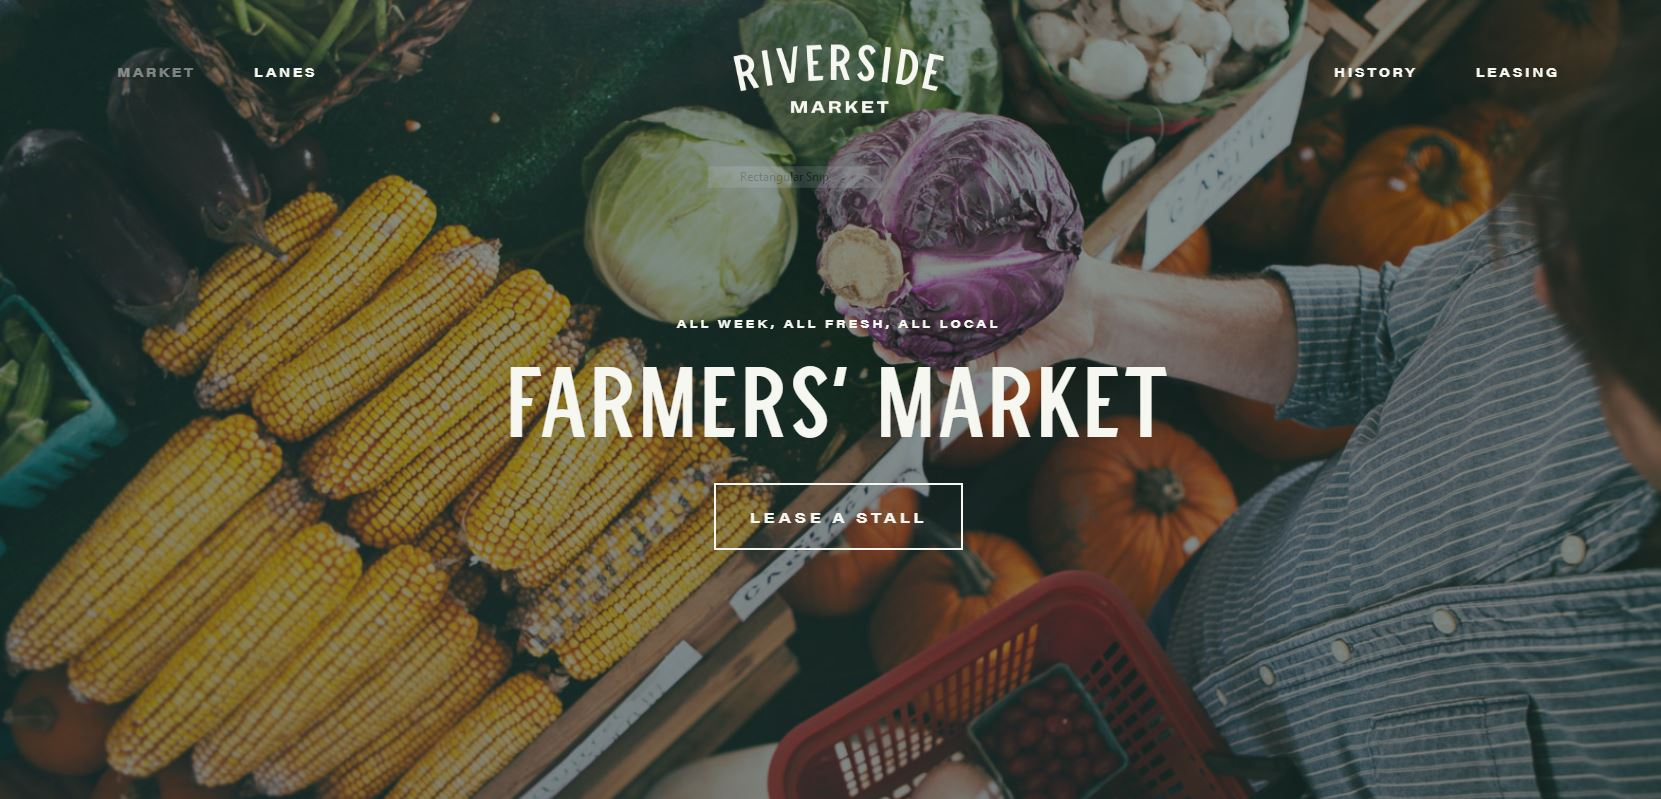 We are getting excited about The Riverside Market